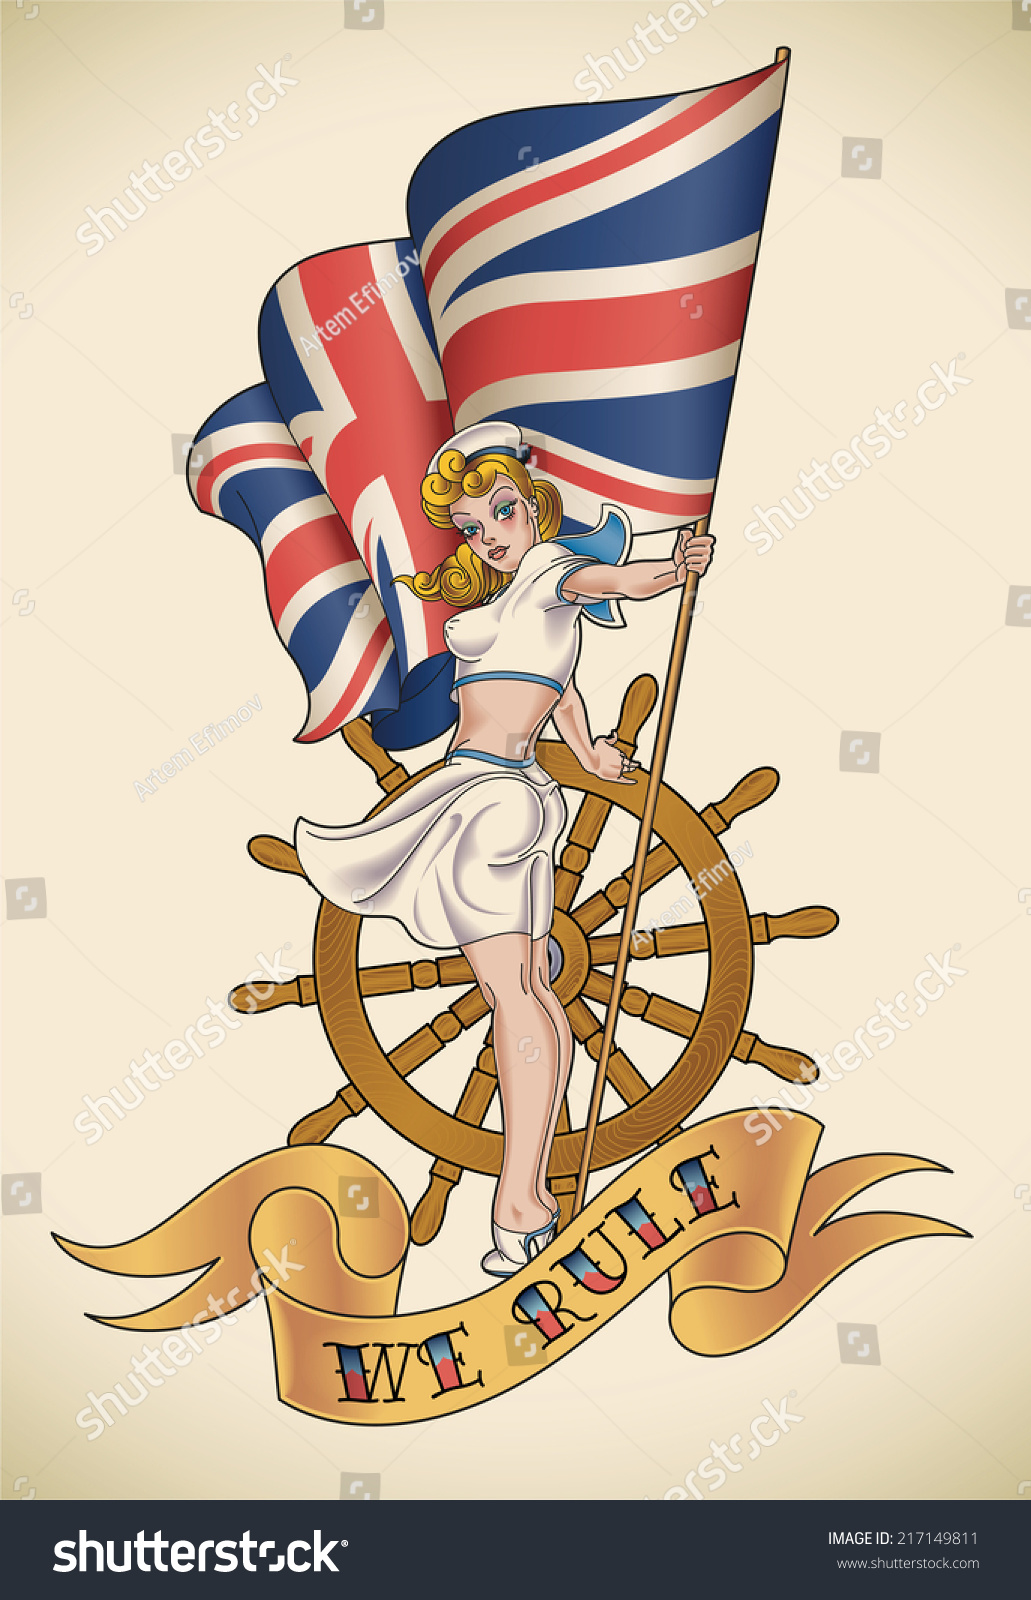 Oldschool navy tattoo pinup lady union stock illustration old school navy tattoo of a pin up lady with the union jack in buycottarizona